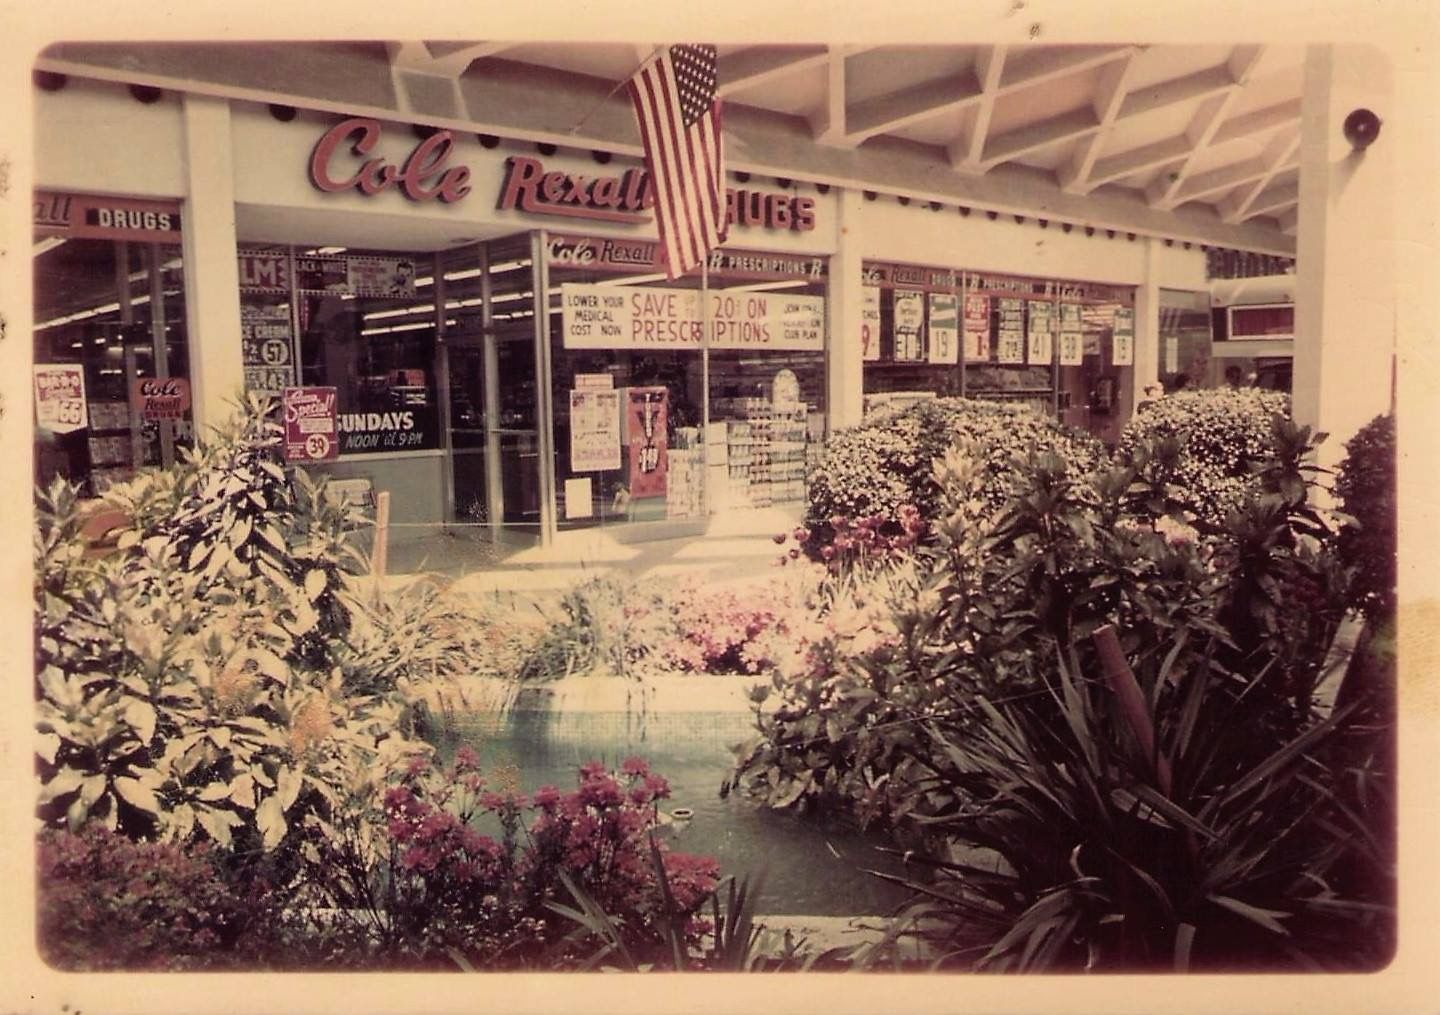 Cole S Village Mall Cleveland Tn Village Photos Cleveland Tennessee